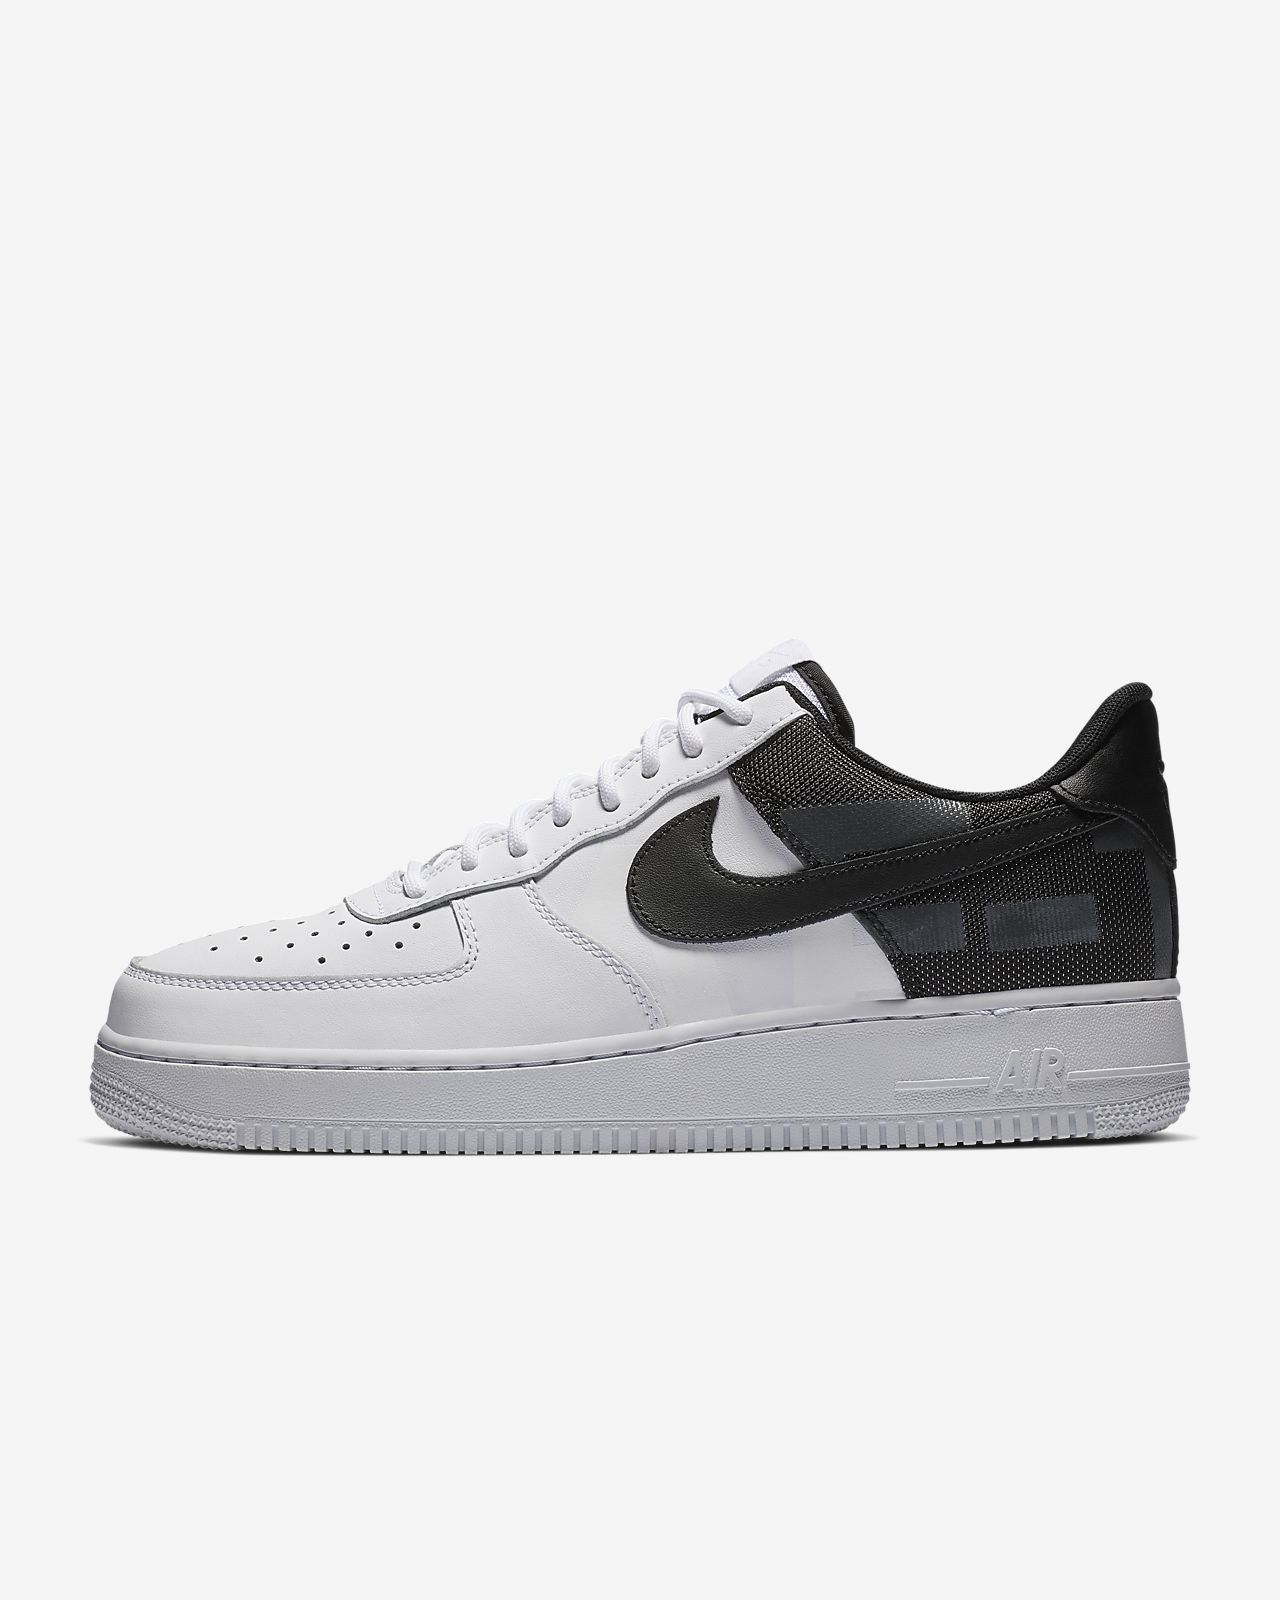 6deecc034050b1 Nike Air Force 1  07 LV8 Men s Shoe. Nike.com